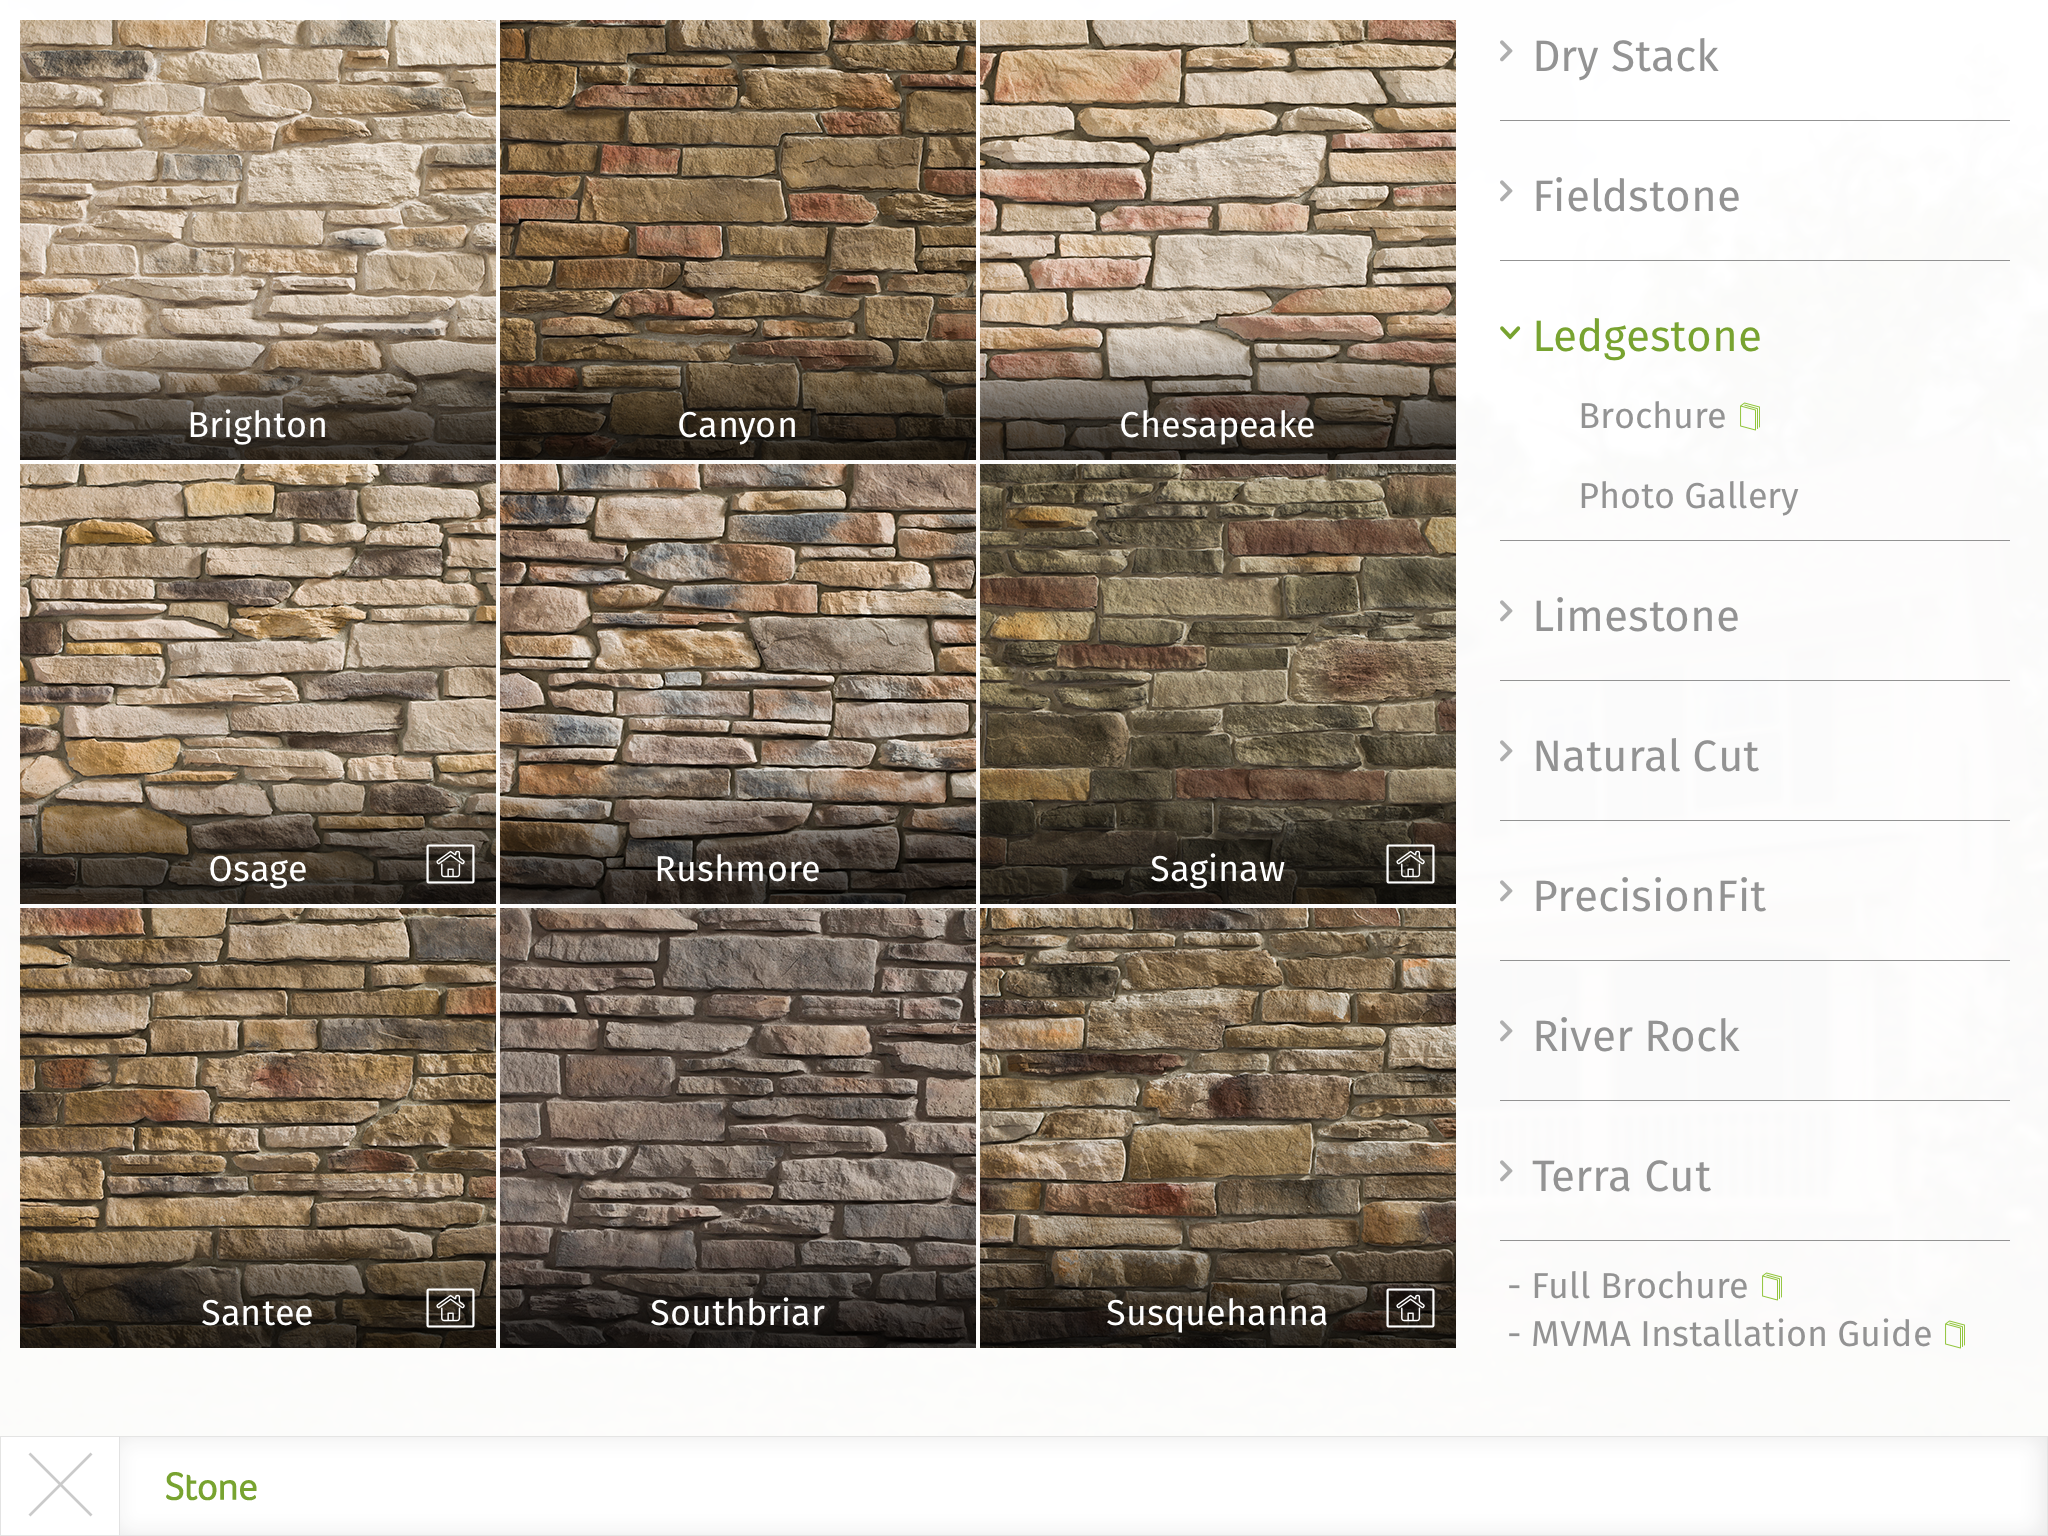 Provia S Home Exterior Design Ipad App Enables Users To Choose From Provia S Eight Styles Of Manufactured Stone App Design Ipad House Exterior Exterior Design